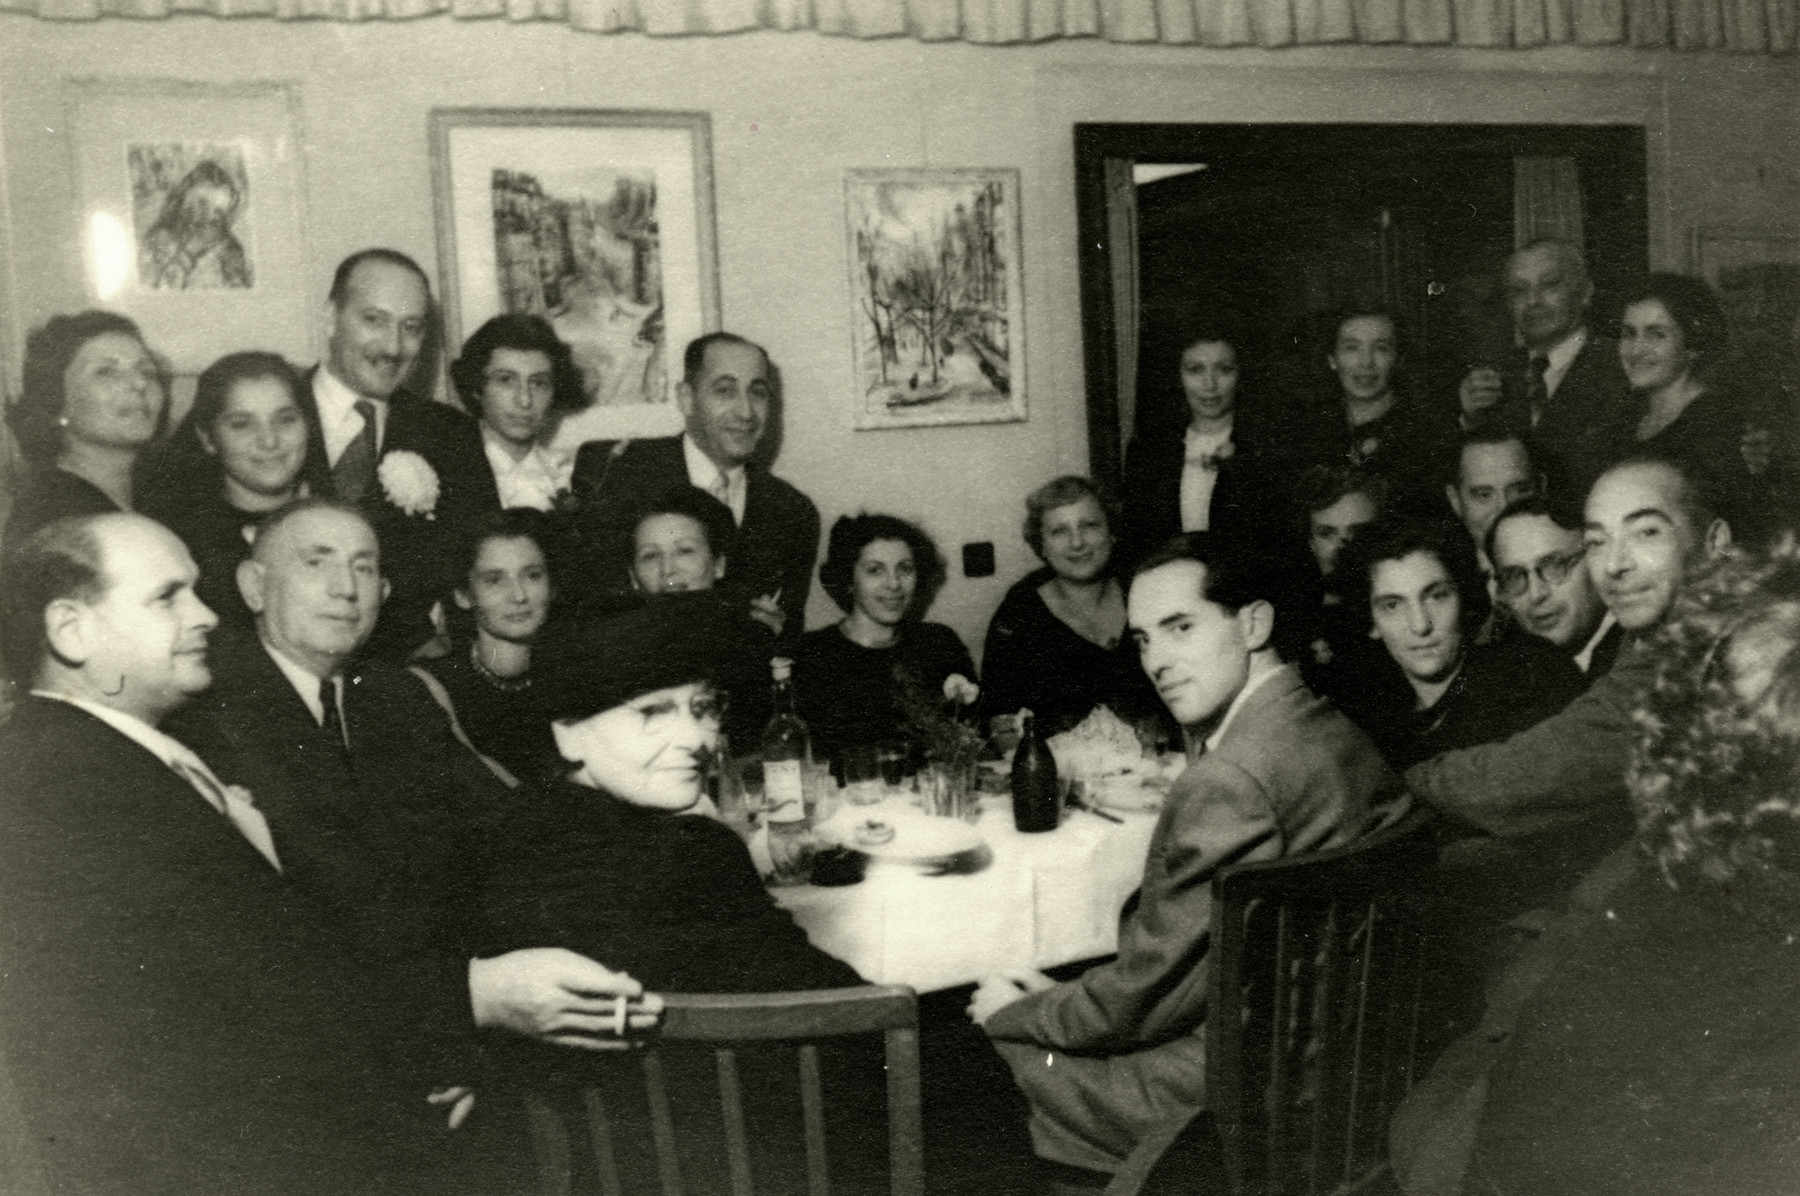 Former patisans gather for a party  in Tel Aviv after the war.  David Svirsky is seated in front at the table wearing a suit.